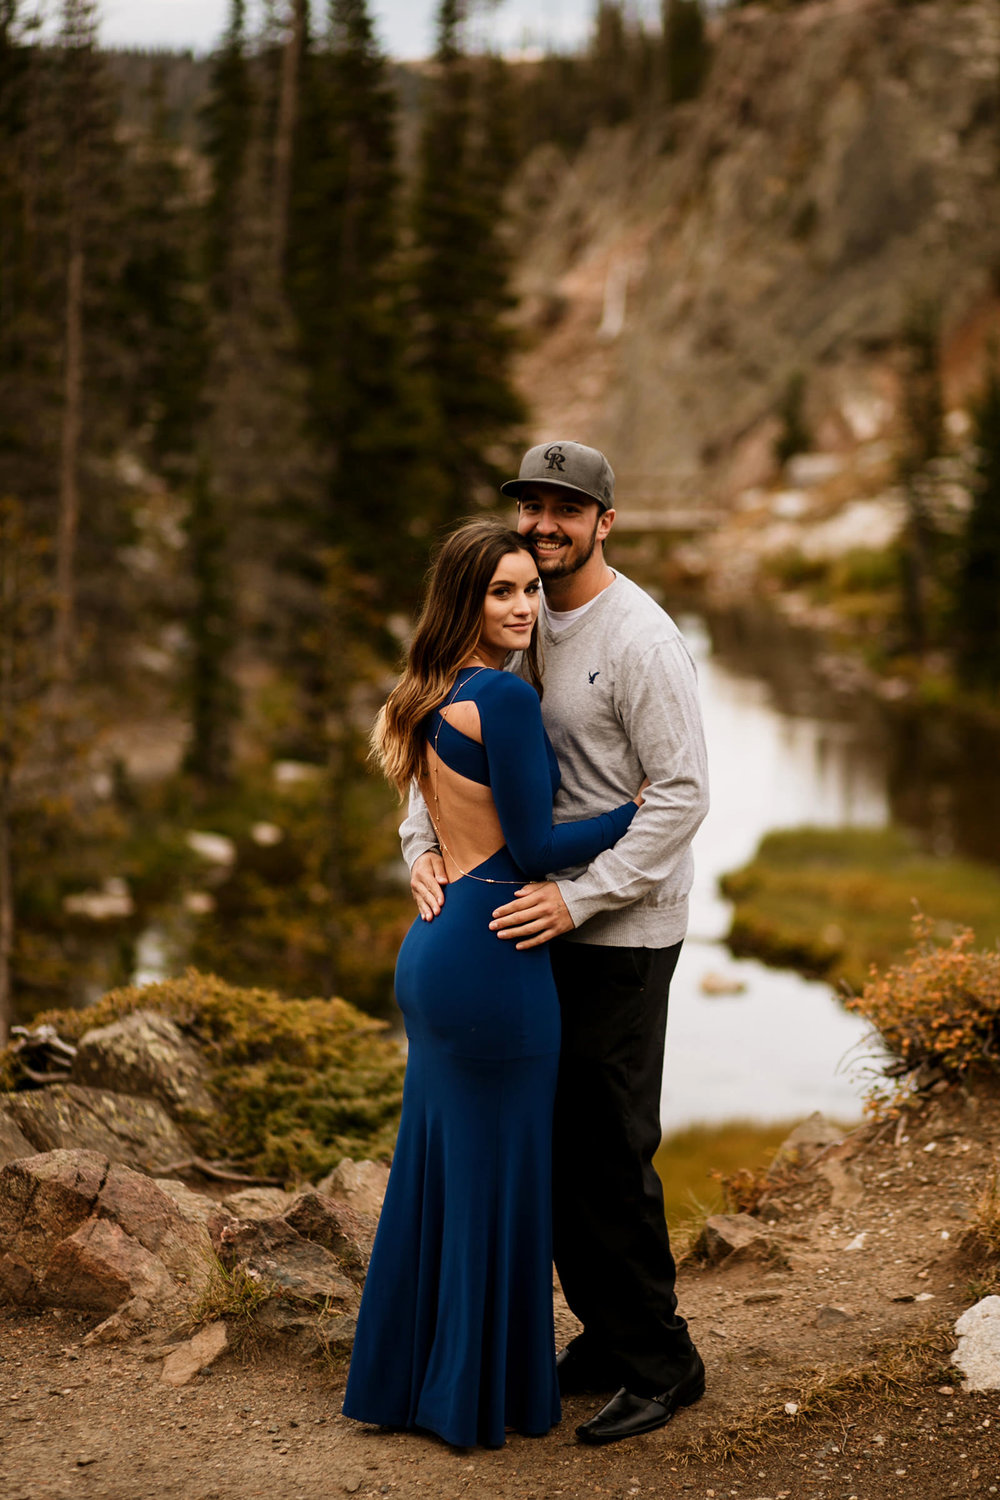 Liz Osban Photography Cheyenne Wyoming Engagement Wedding Photographer couple adventure elopement wedding laramie denver fort collins colorado rocky mountain national park31.jpg